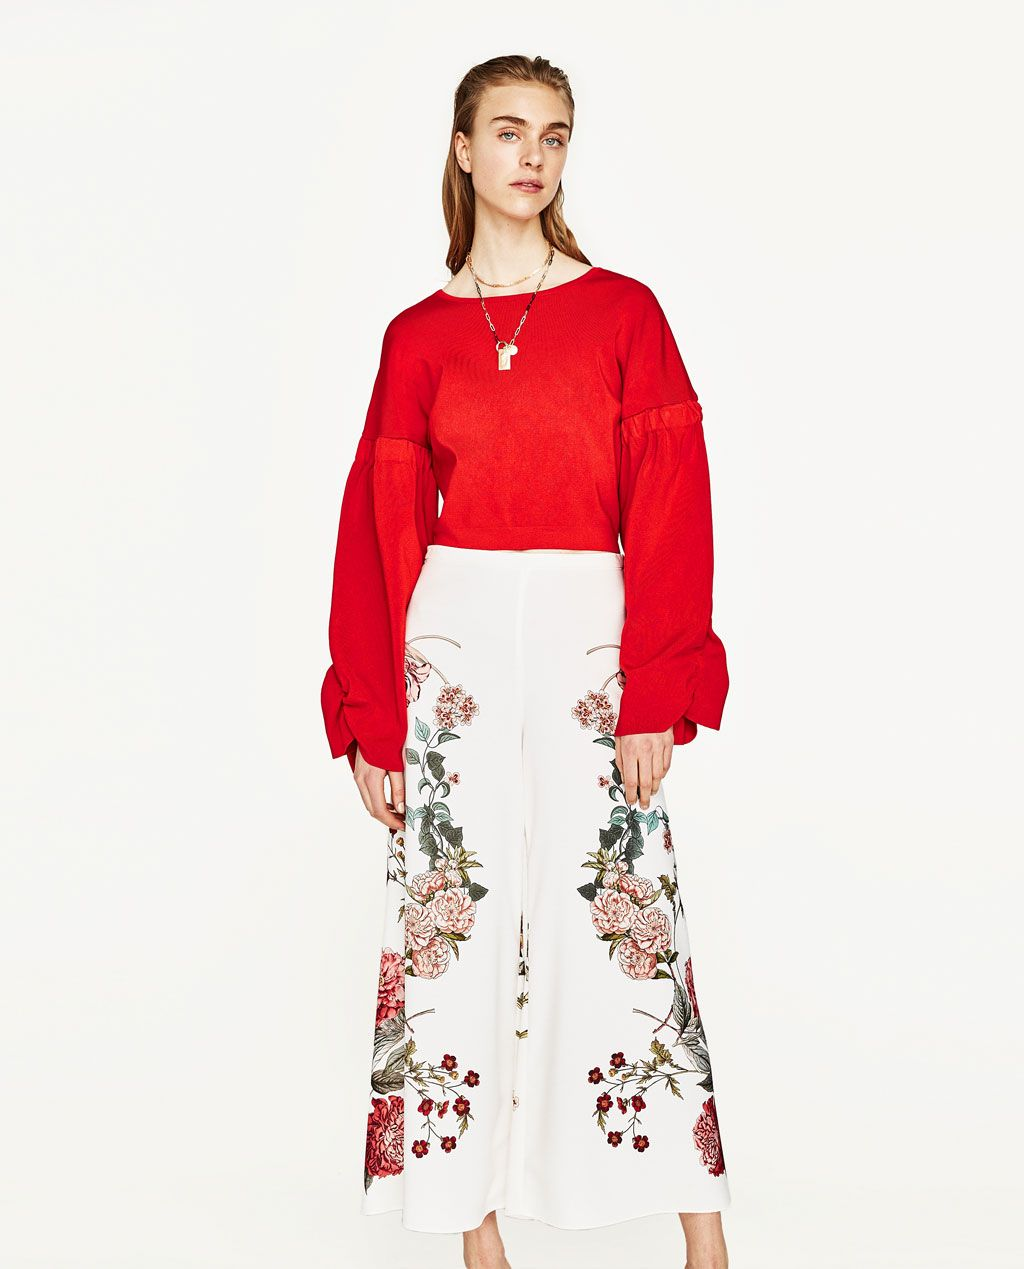 Image 1 Of From Zara Zara Fashion Style Red Outfit